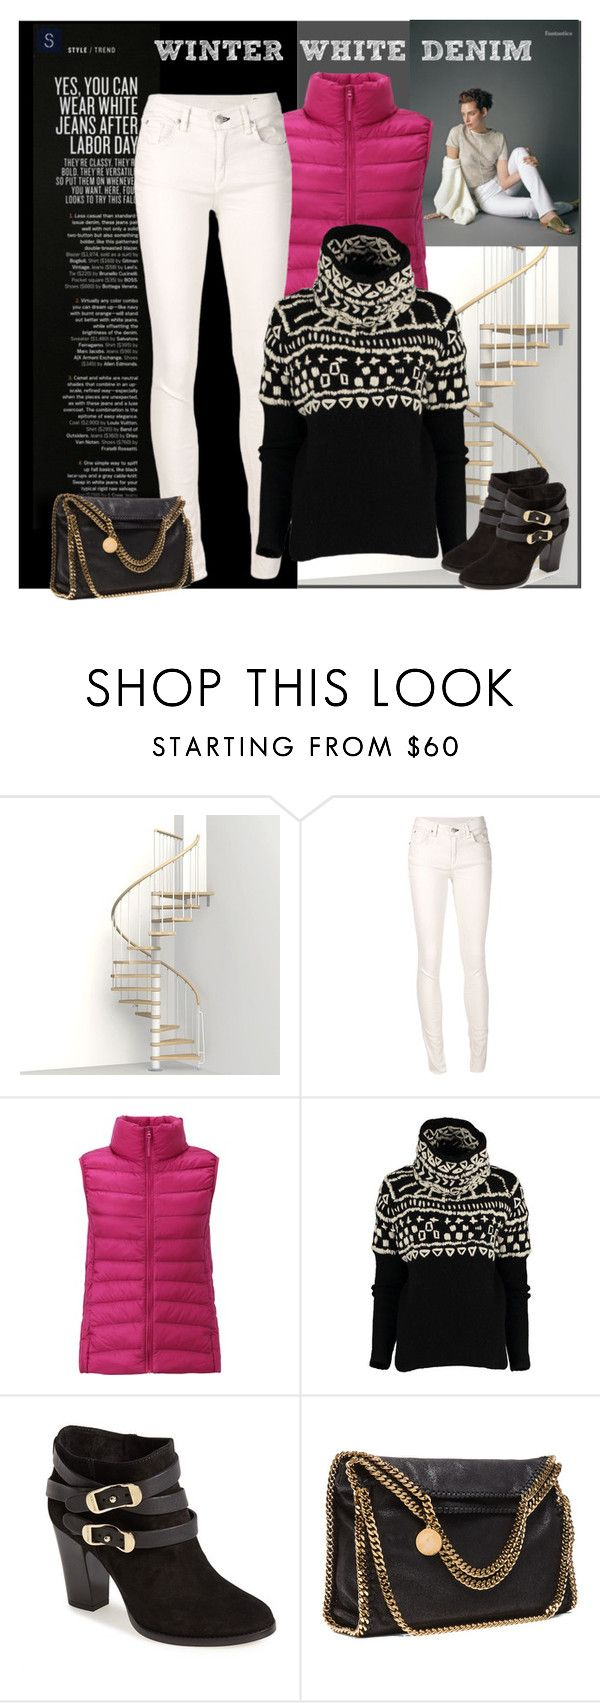 """winter white denim"" by sheryl-lee ❤ liked on Polyvore featuring rag & bone/JEAN, Uniqlo, Jimmy Choo and STELLA McCARTNEY"